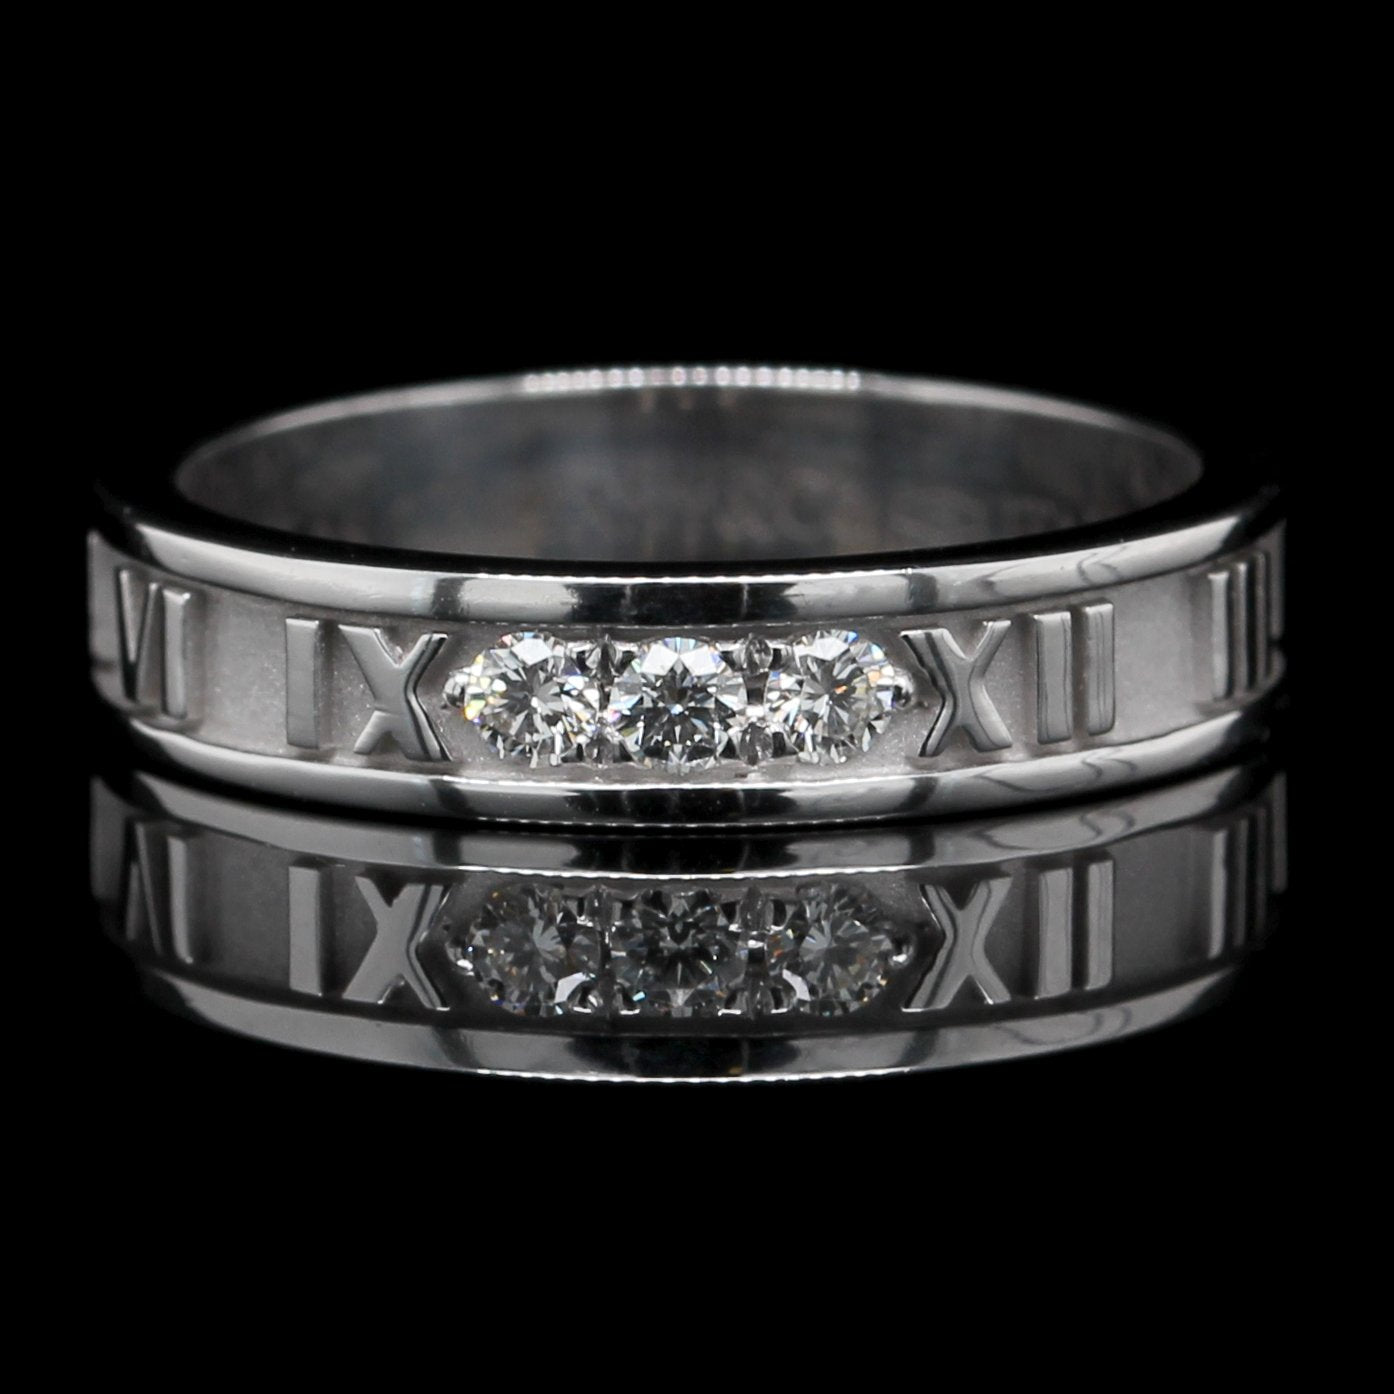 Tiffany & Co. 18K White Gold Estate Atlas Ring